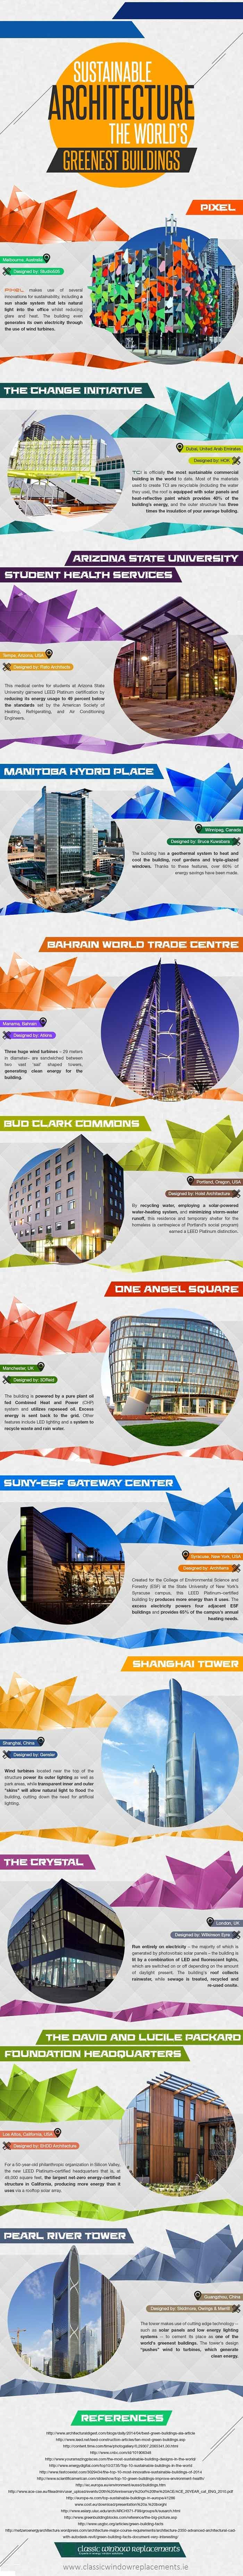 Sustainable Buildings infographic